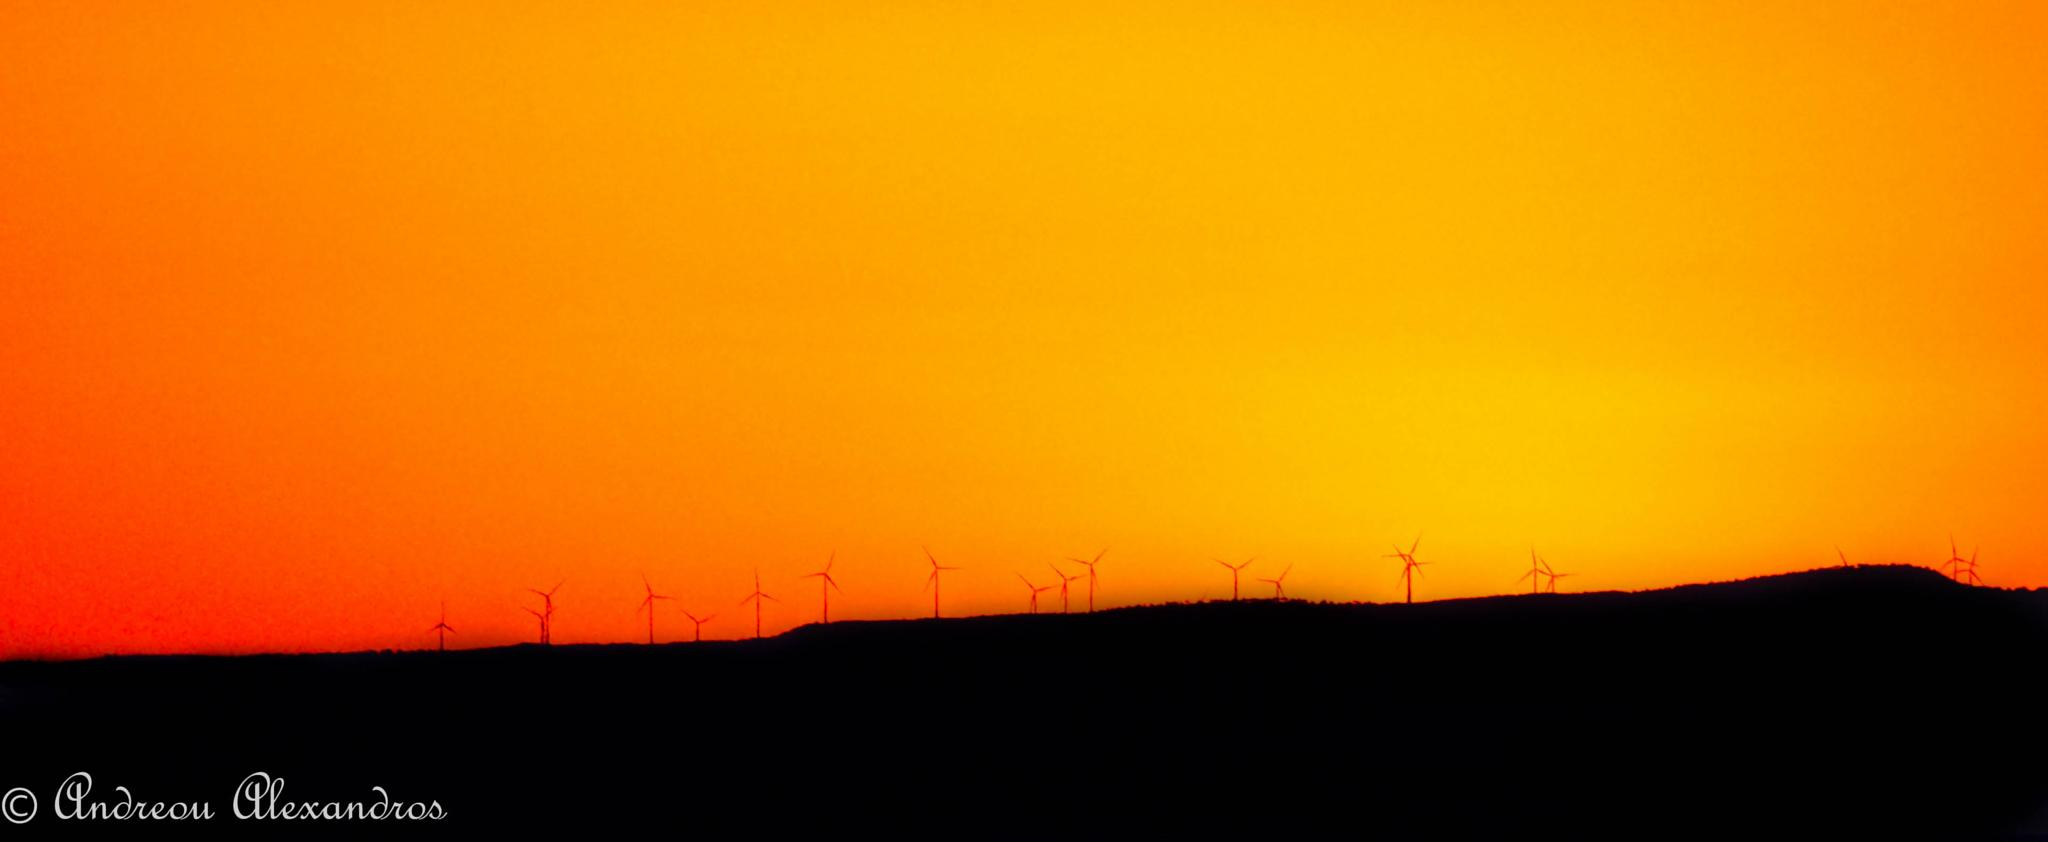 Windmills Silhouettes by Alexandros Andreou